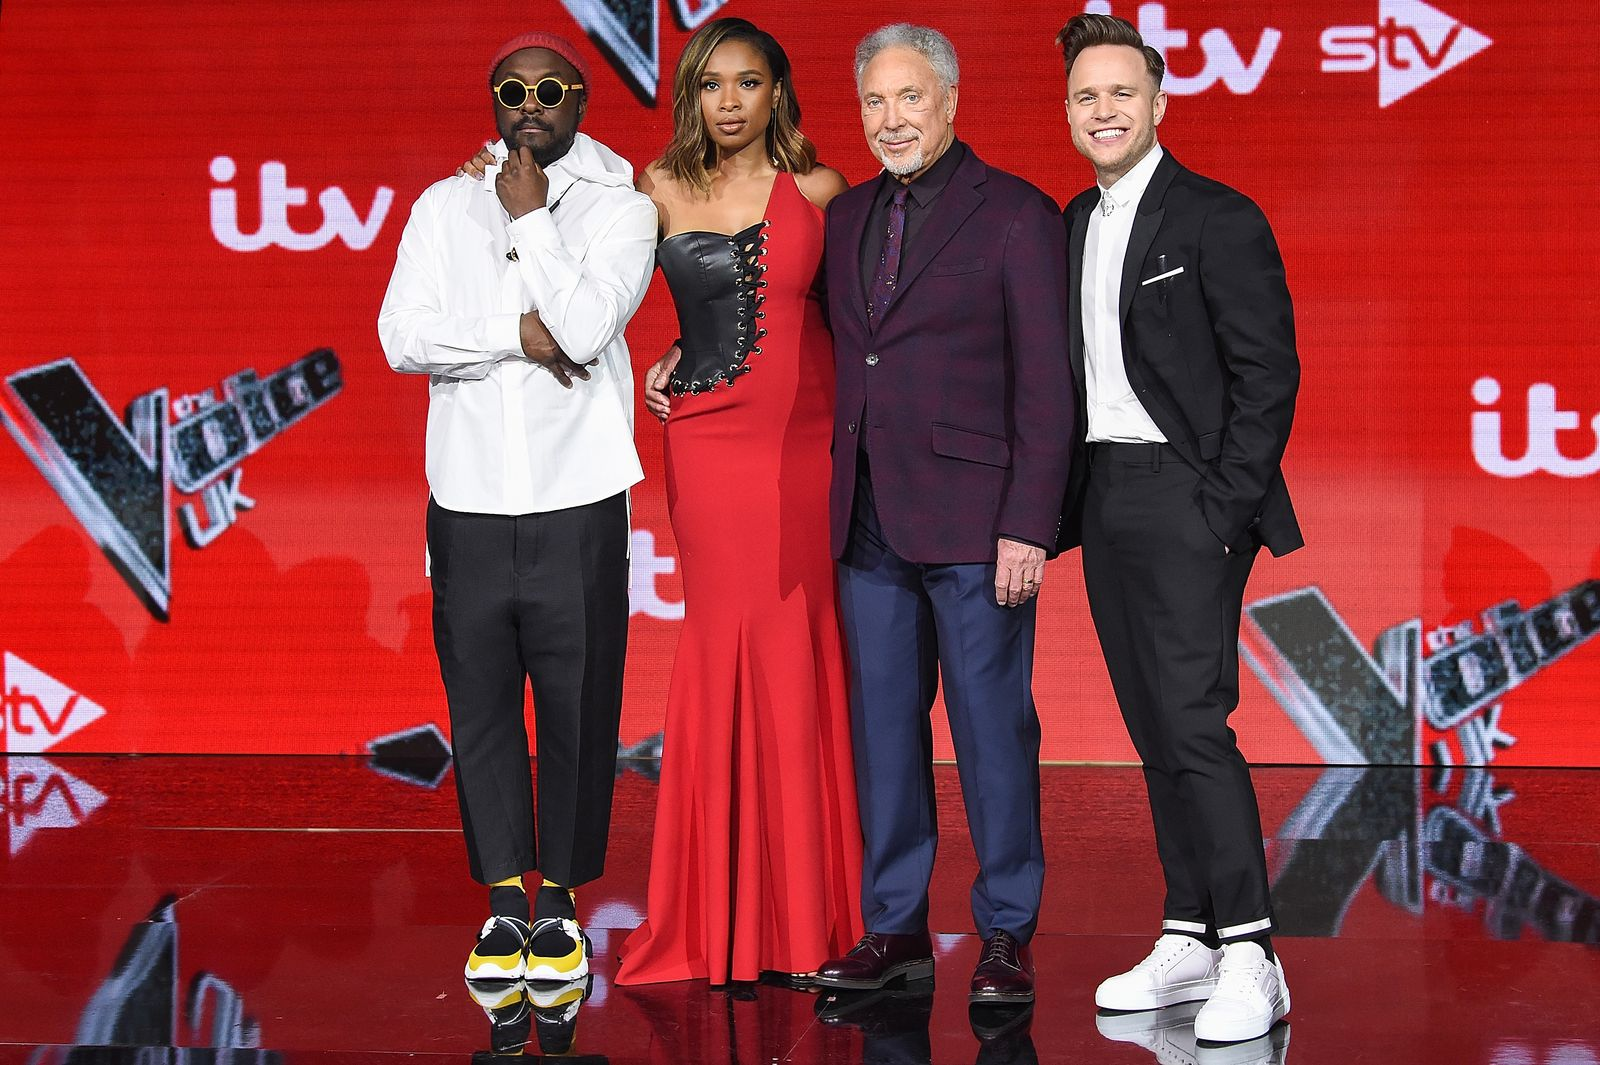 The Voice UK Final 2019 - Photocall